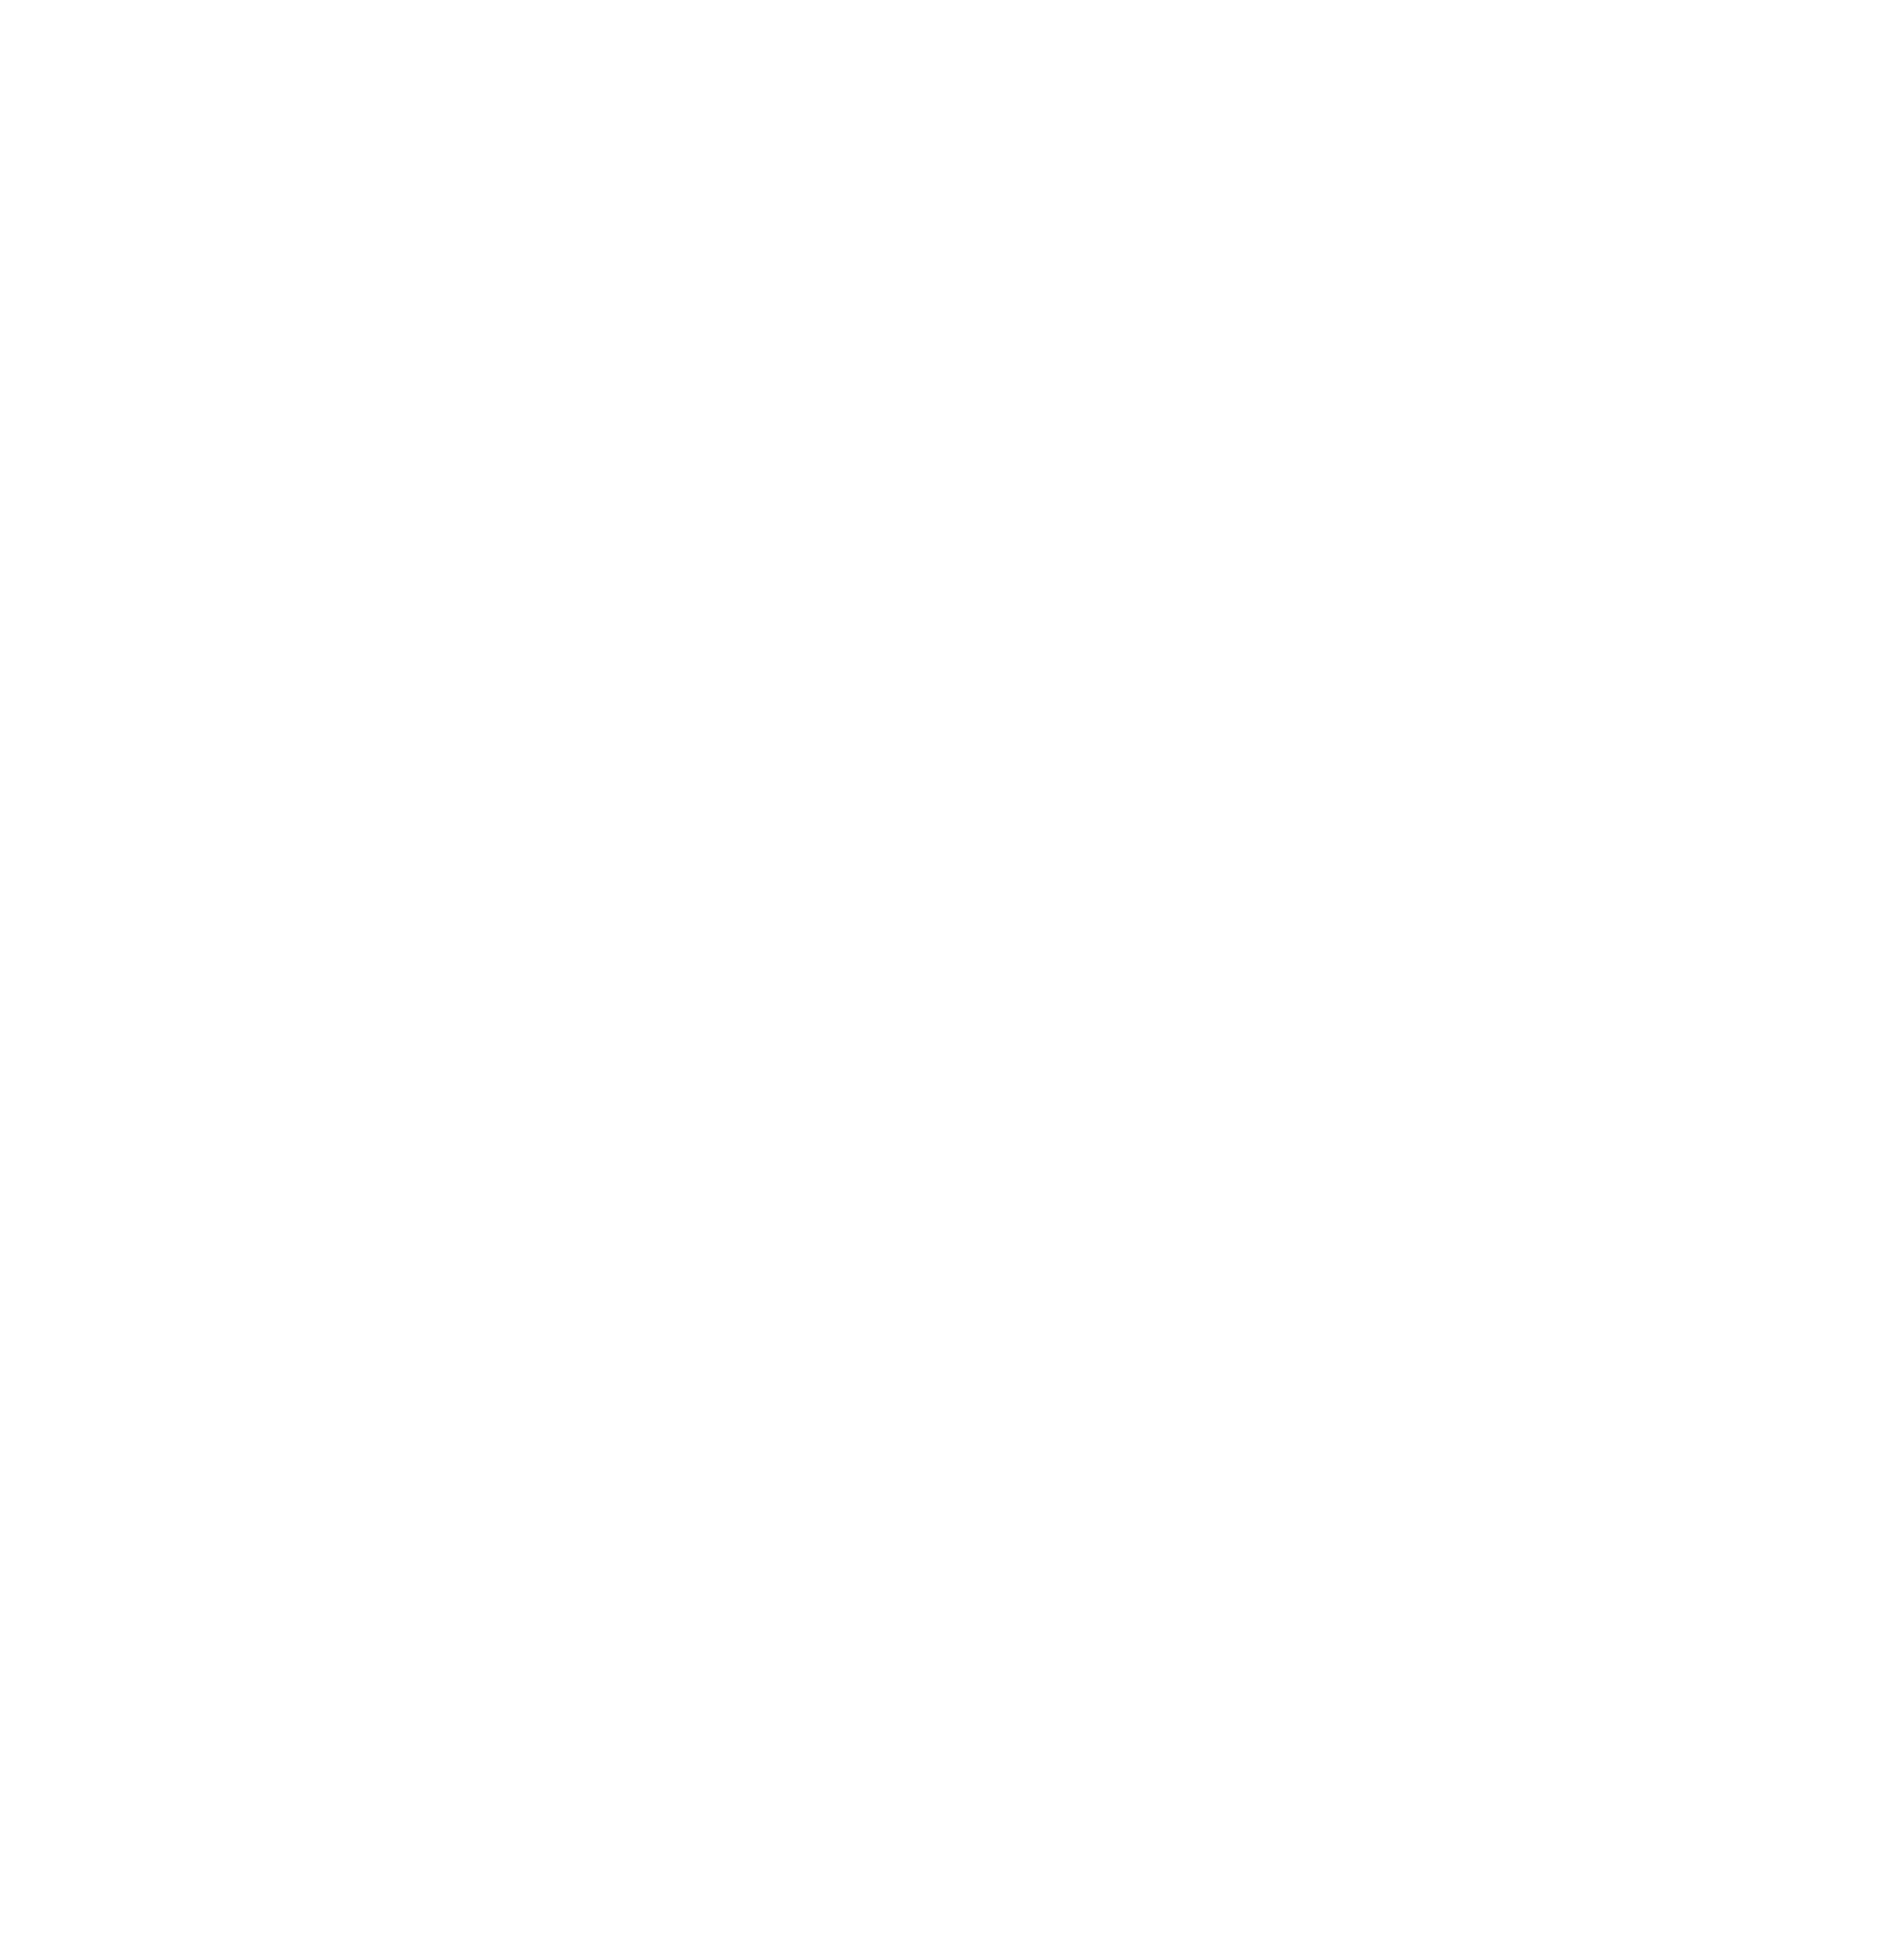 purple banana creative design